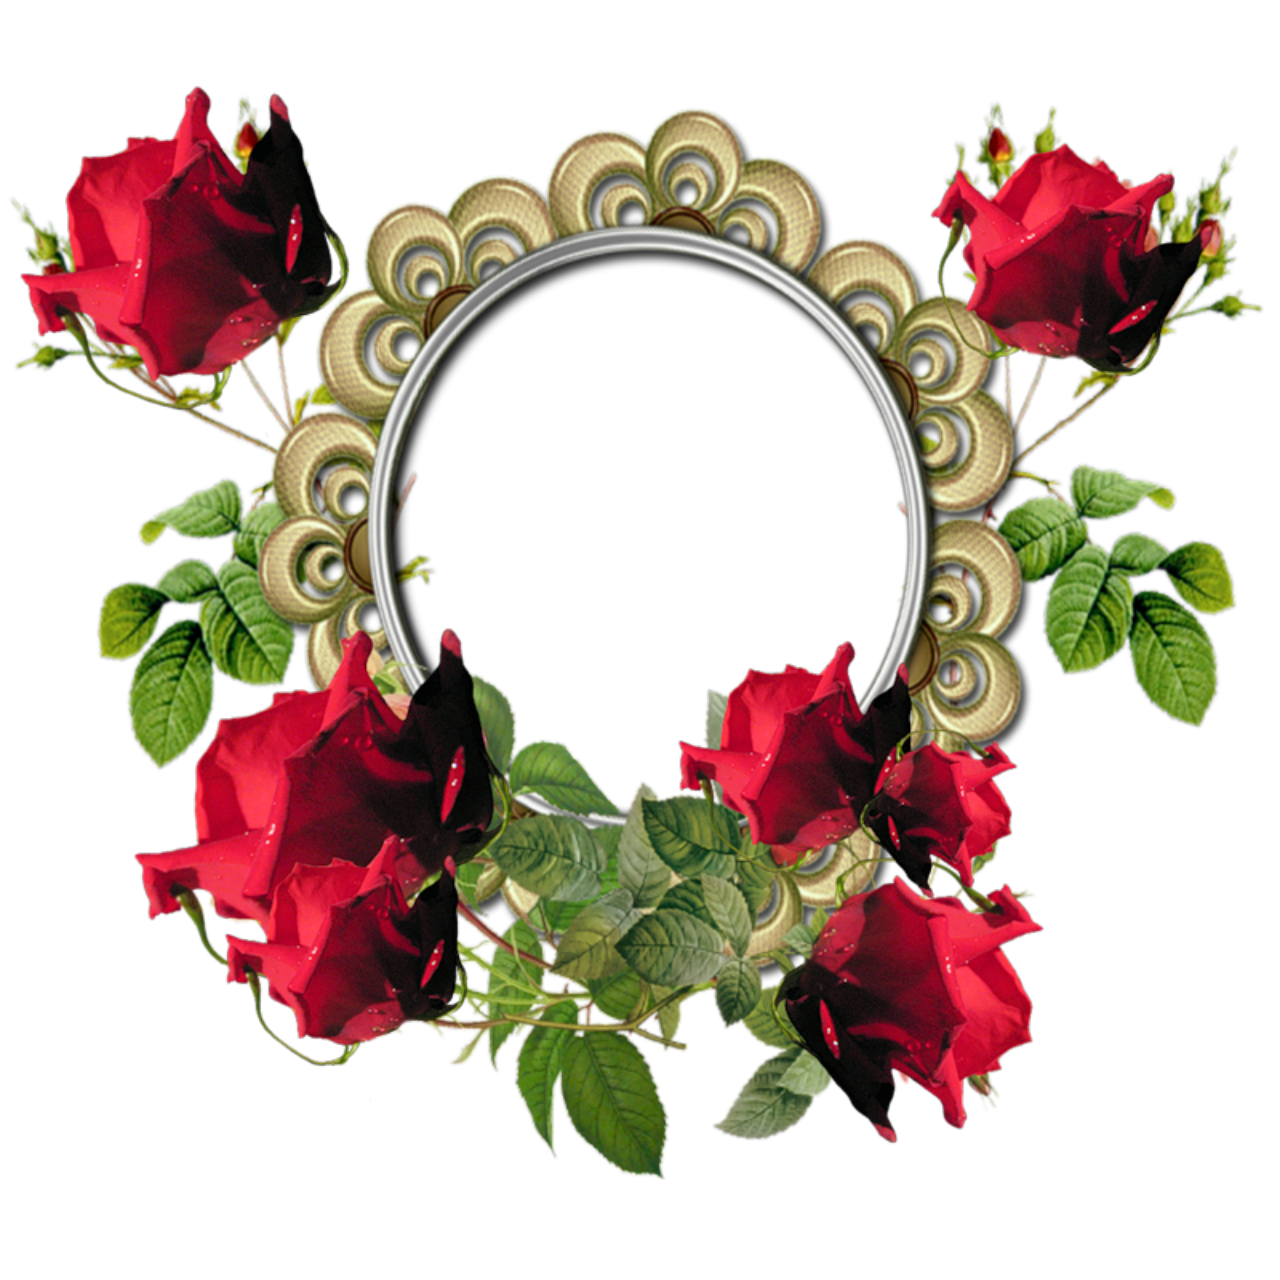 2512cb116cb1d86fcd37400ee92dd790 Jpg 1280 1280 Rose Flower Photos Flower Frame Png Beautiful Rose Flowers